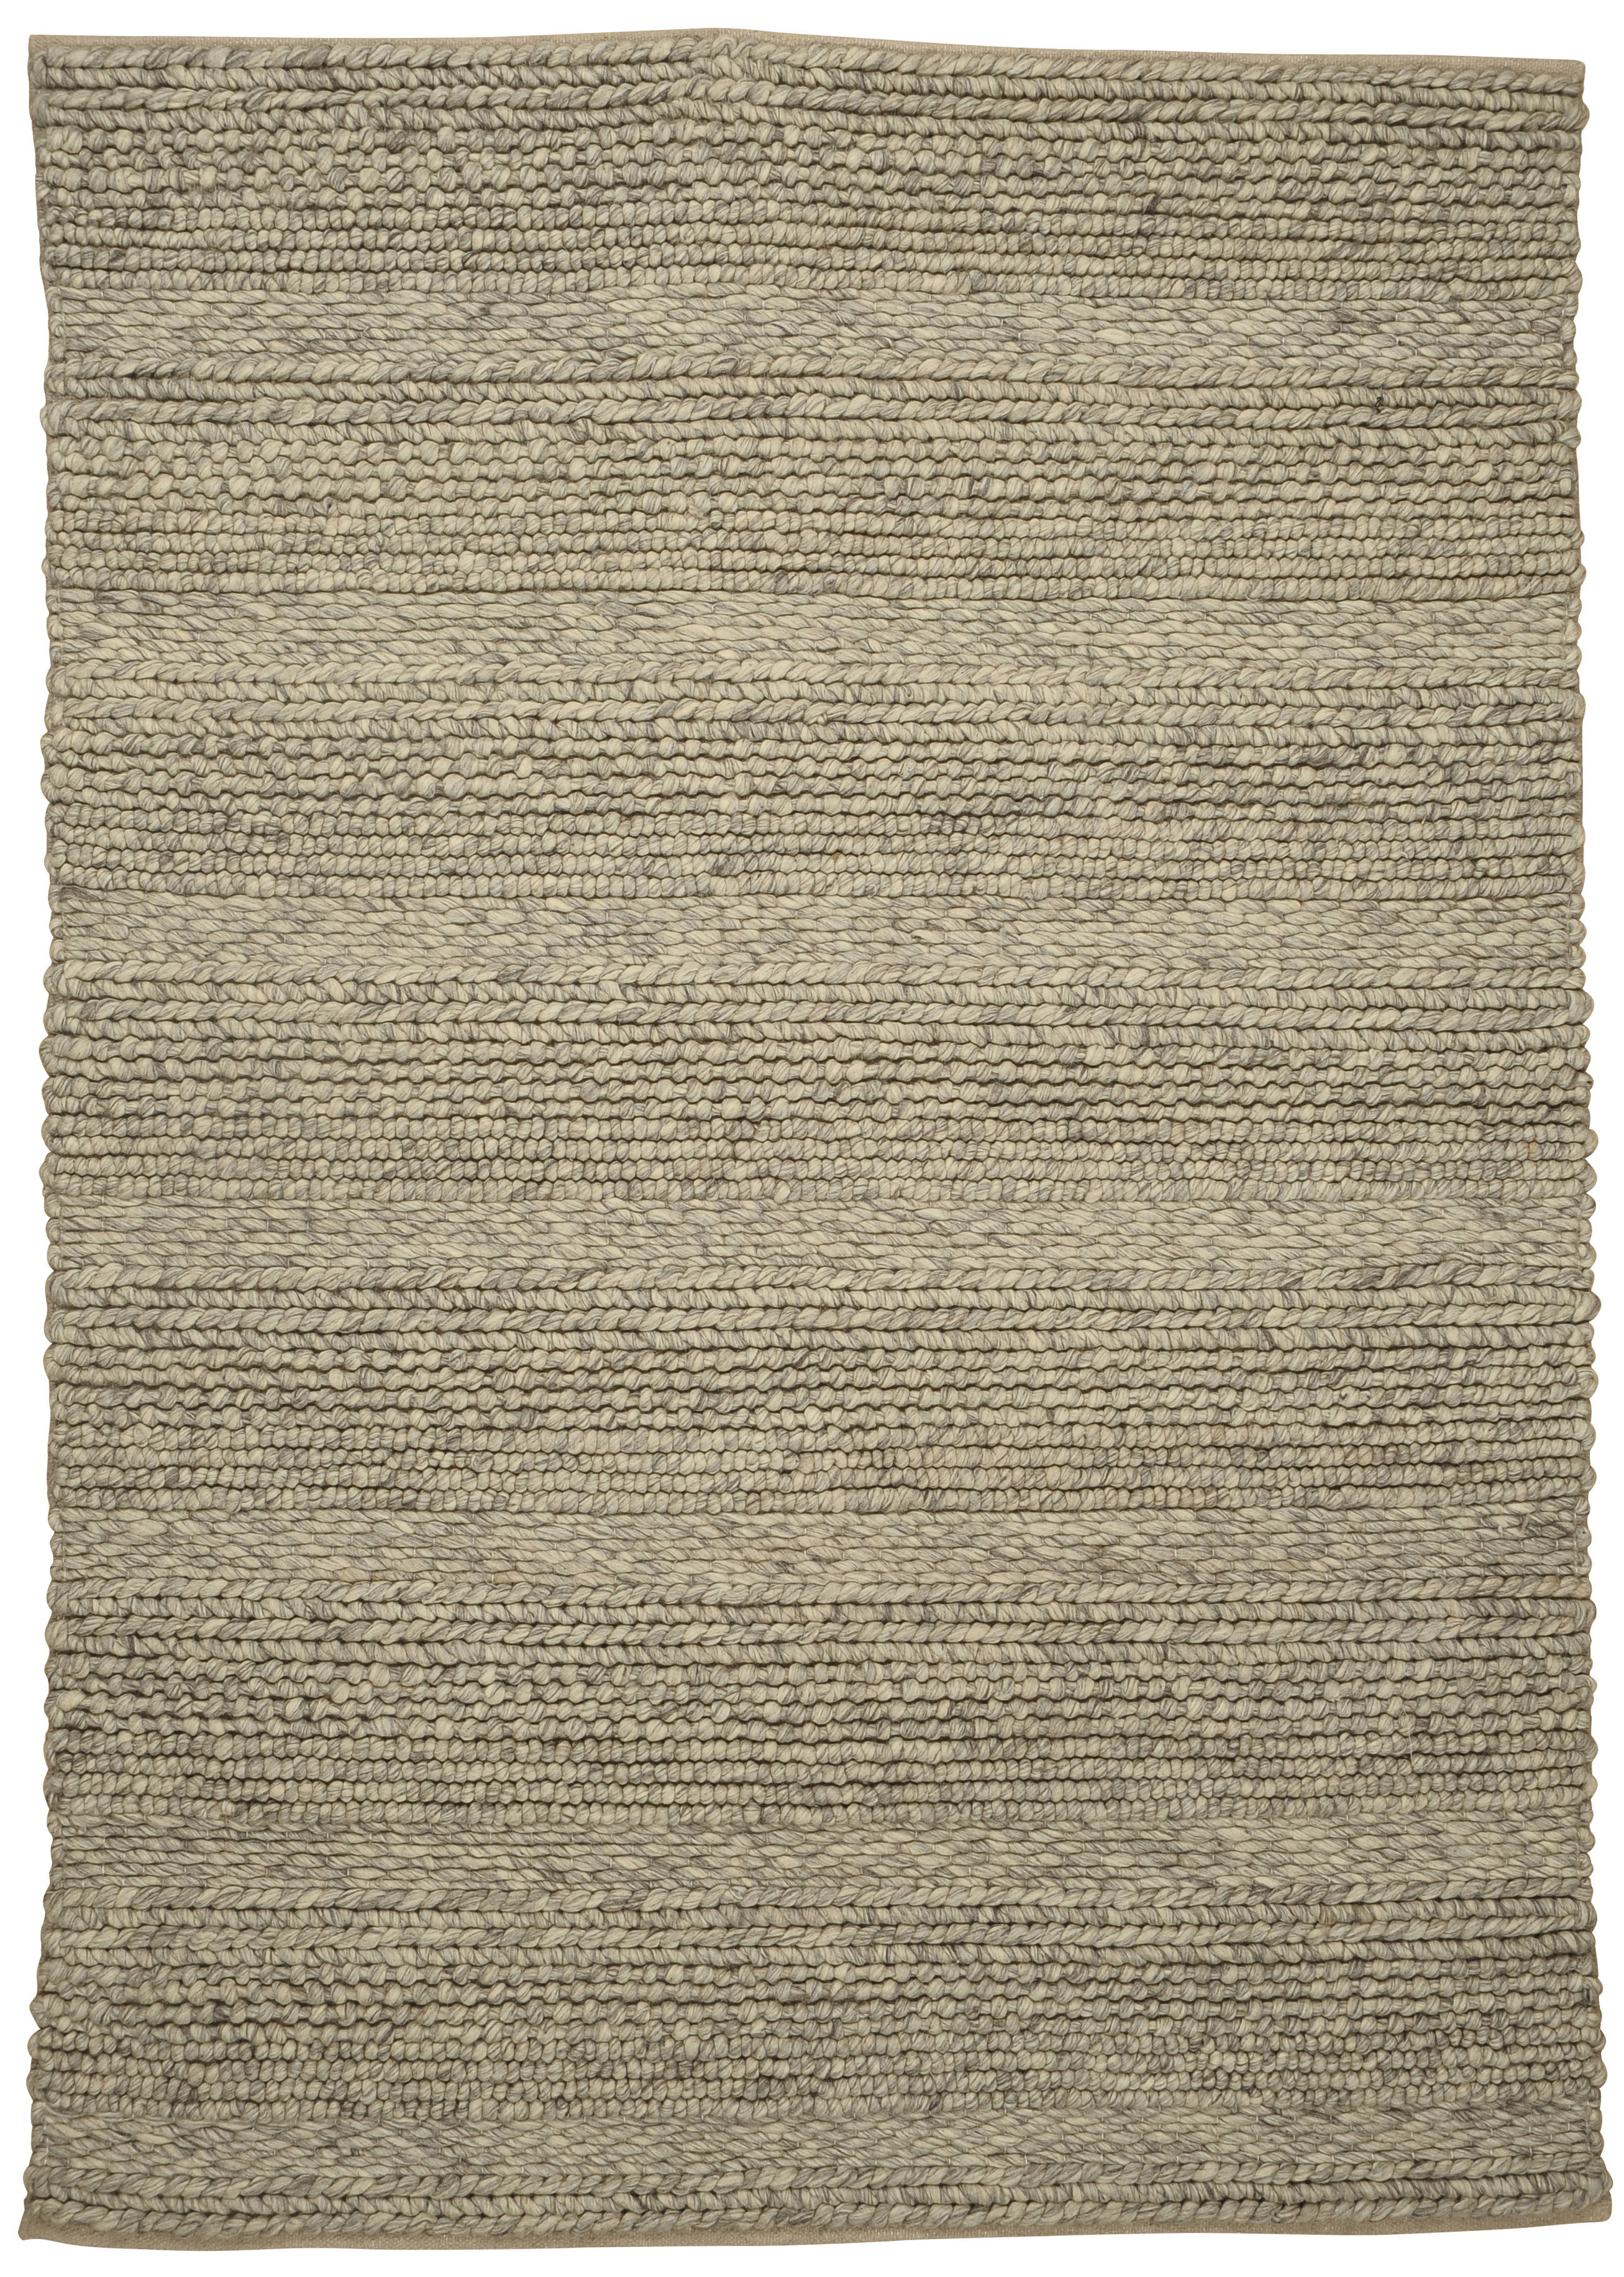 Decoration - Rugs - Irish Rug by Toulemonde Bochart - Multi - Wool